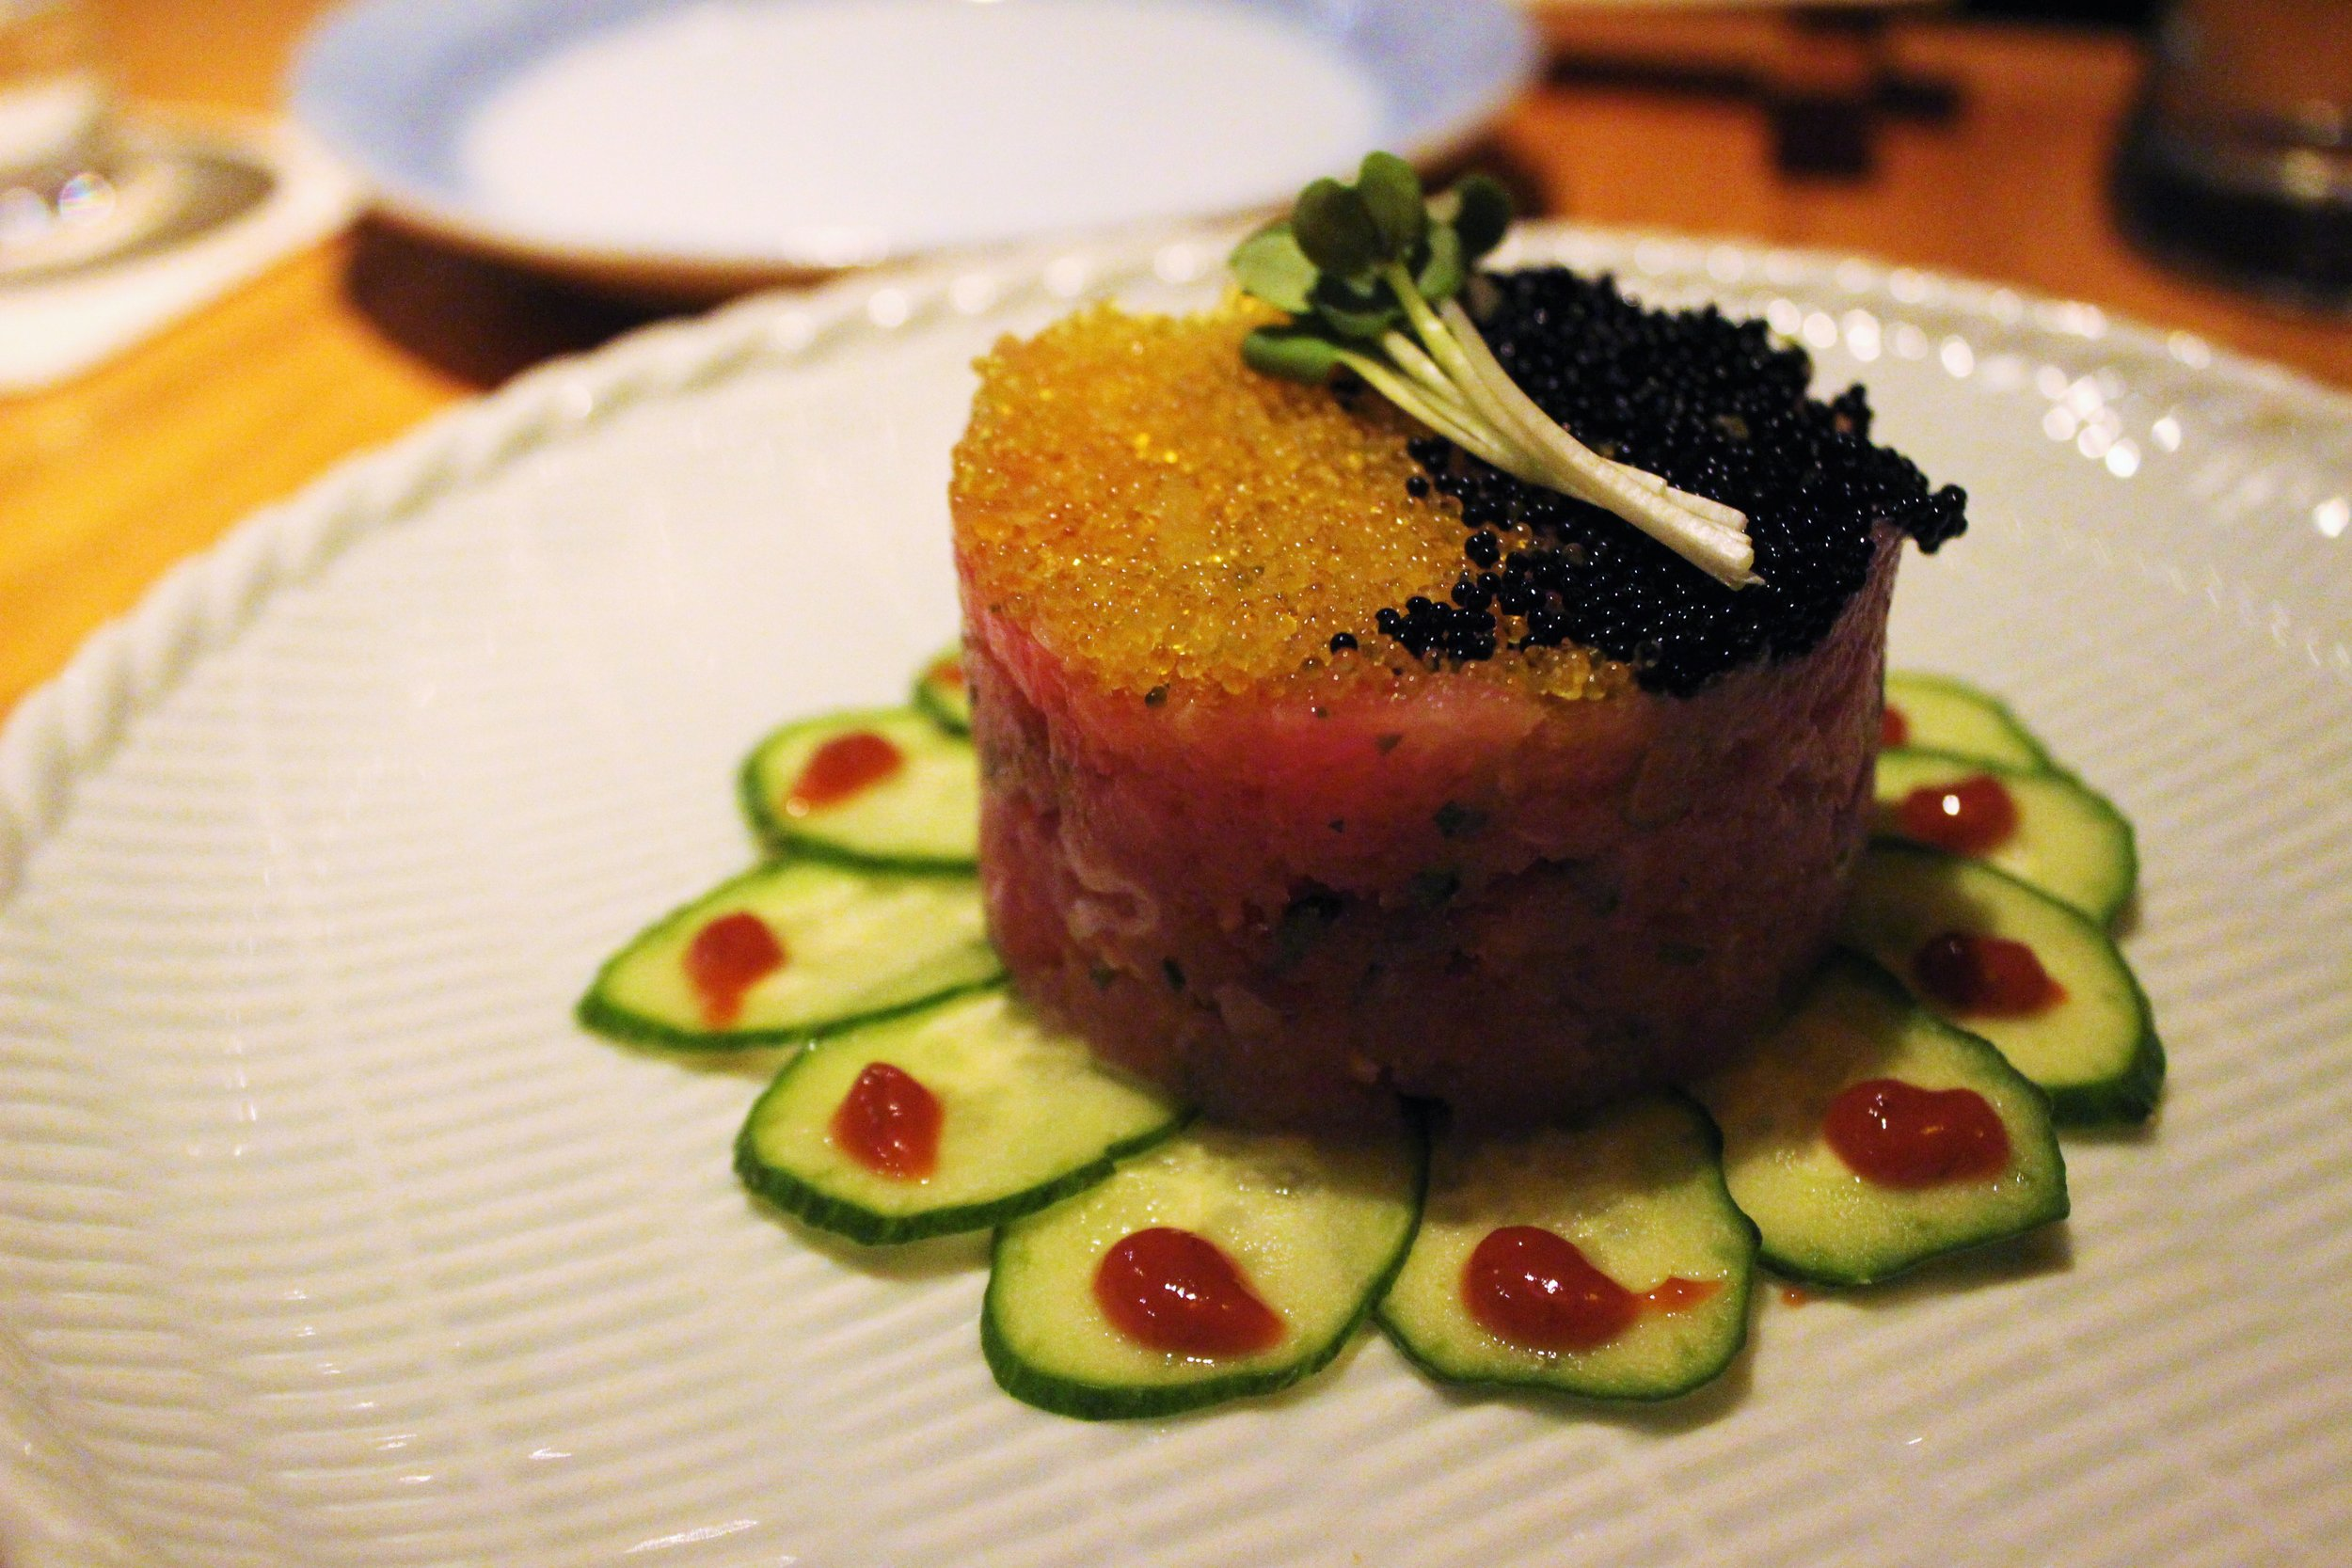 Maguro Tartar: Chopped Tuna with Flying Fish Roe and Steeped in Yuzu and Caviar